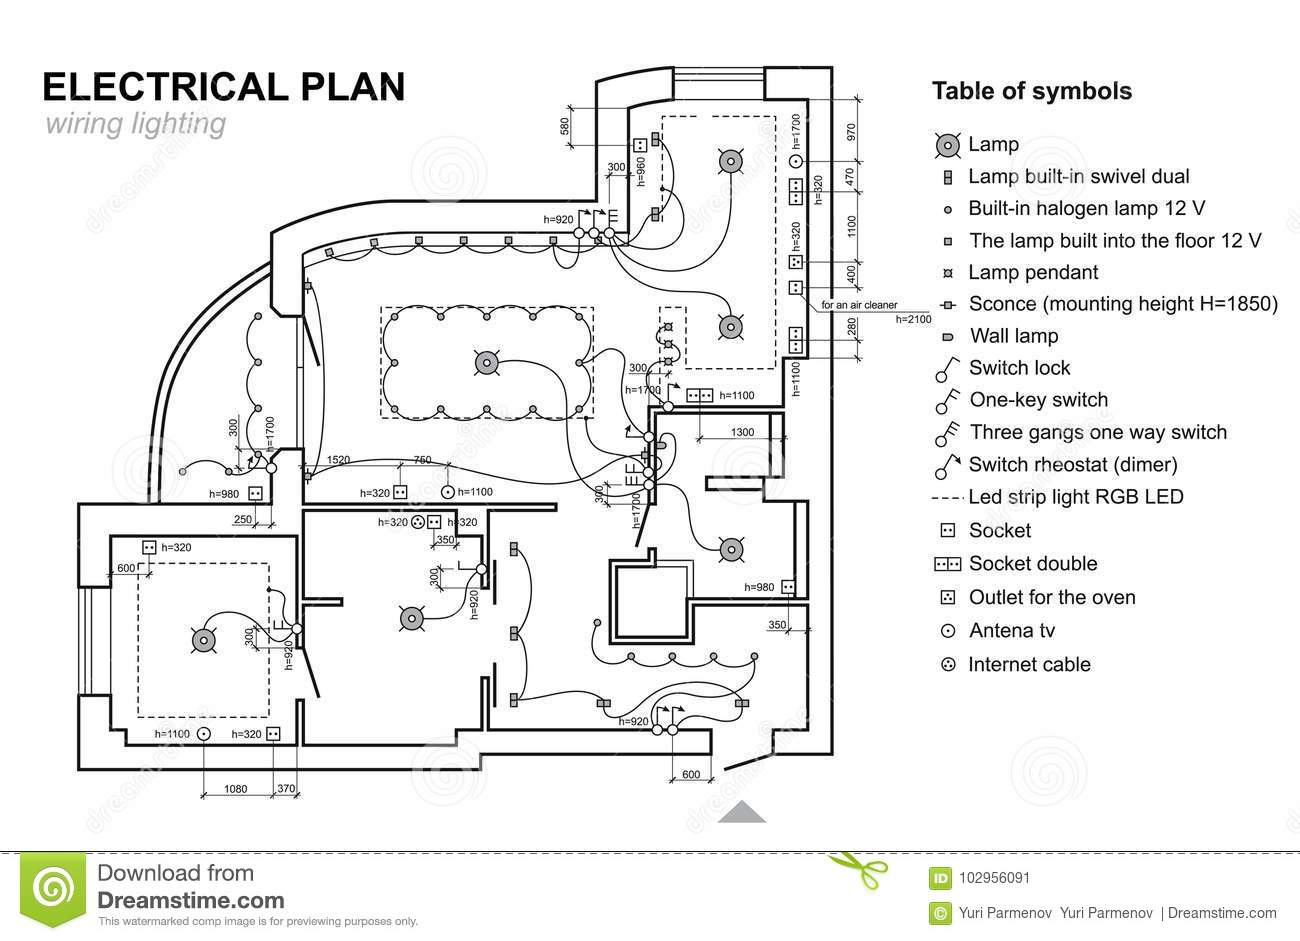 Plan wiring lighting. Electrical Schematic interior. Set of standard icons  switches, electrical symbols